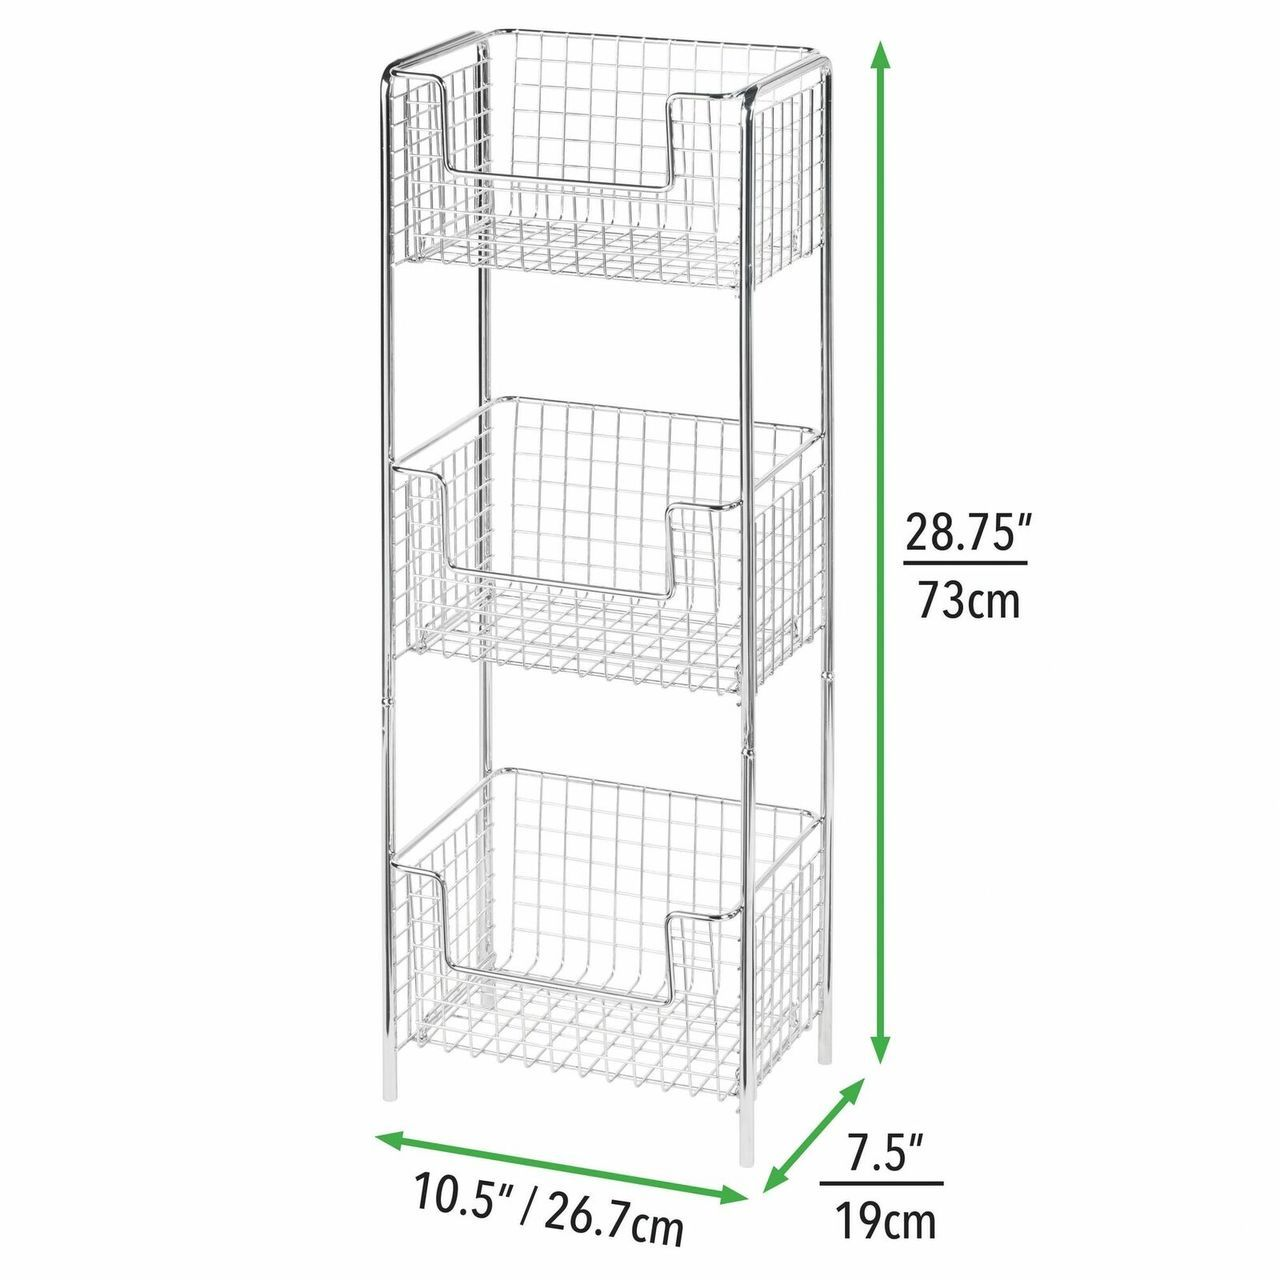 3 Tier Free Standing Kitchen Pantry Storage Shelf in Chrome, by mDesign